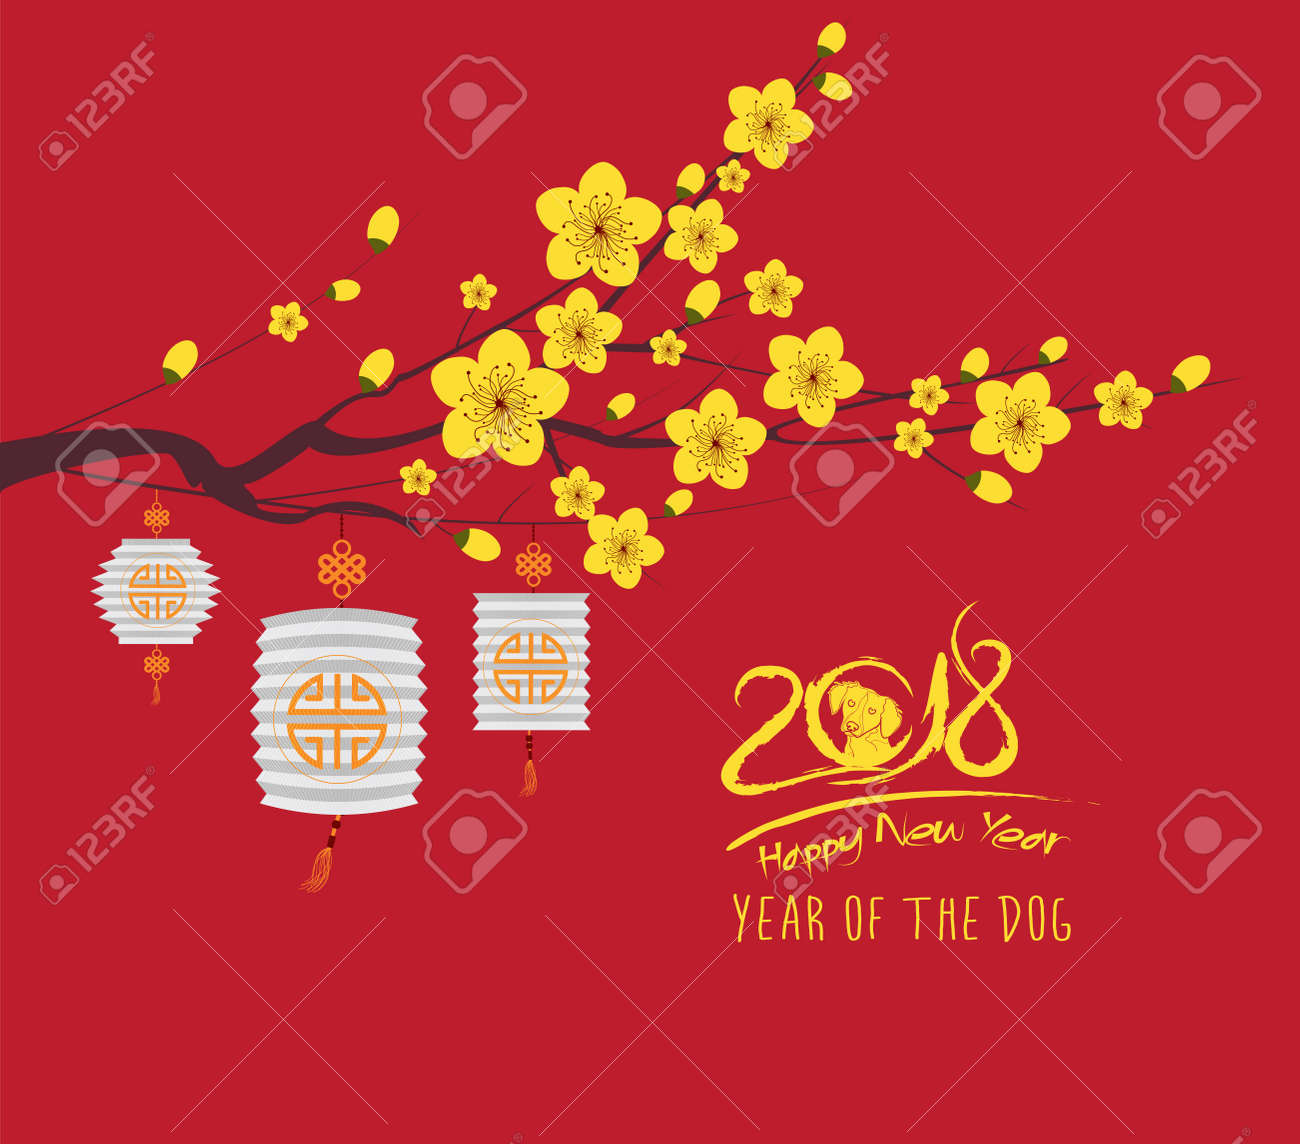 Happy new year 2018 greeting card and chinese new year of the happy new year 2018 greeting card and chinese new year of the dog cherry blossom kristyandbryce Choice Image